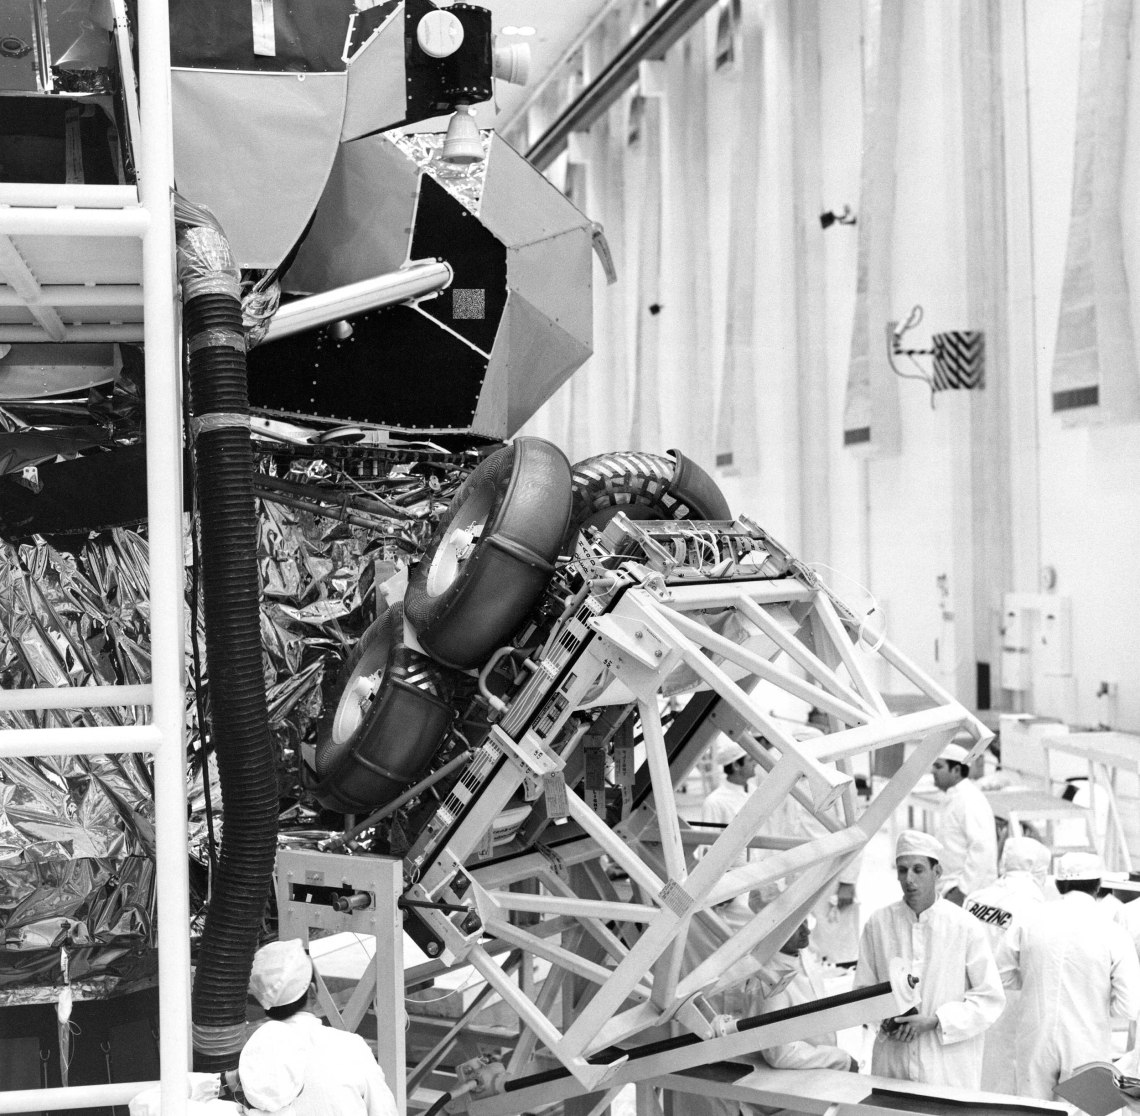 The Lunar Rover is folded up and being moved into its stored position inside the Apollo 15 Lunar Module, where it will remain until its deployment on the Moon's surface. Credit: NASA via Retro Space Images